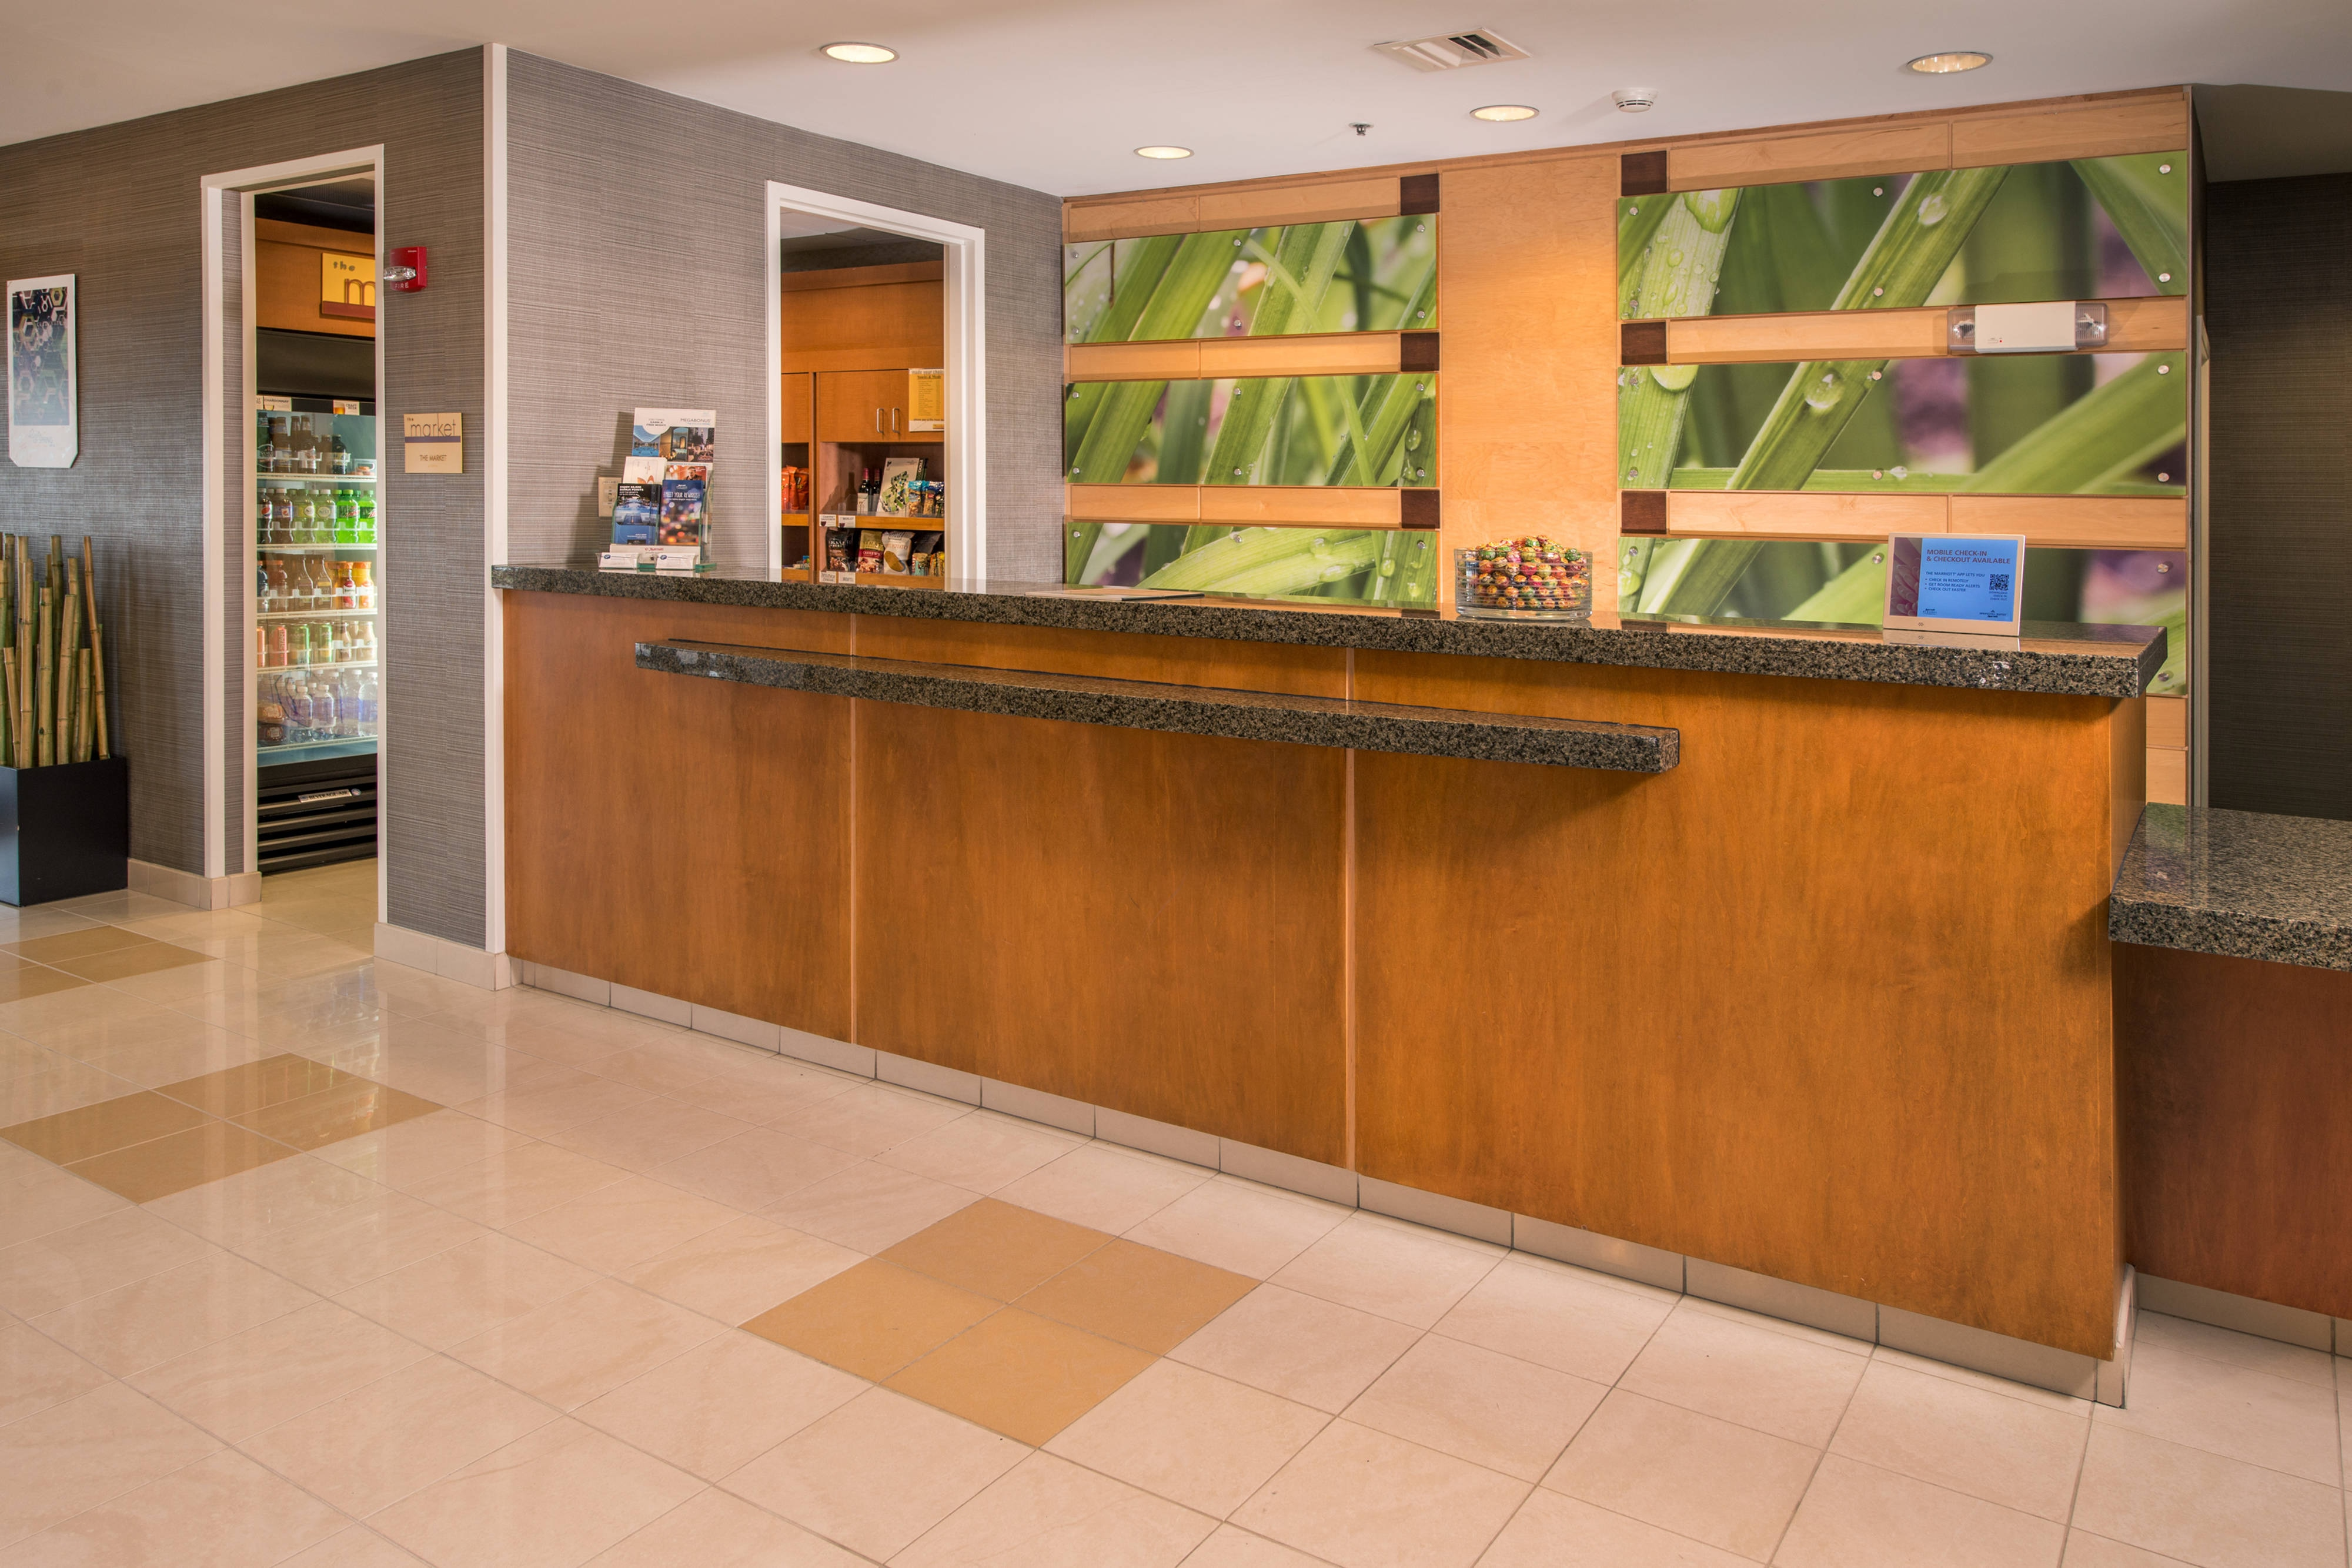 SpringHill Suites Hagerstown Front Desk